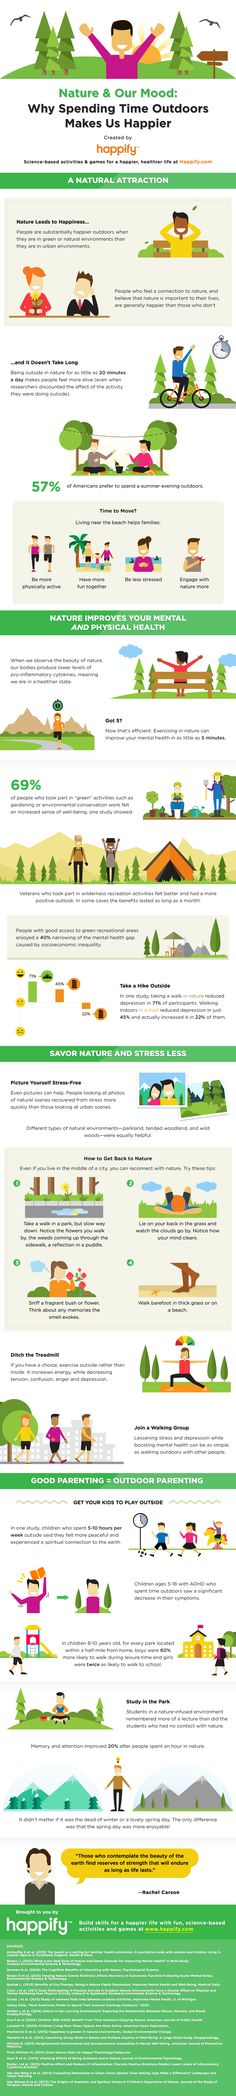 INFOGRAPHIC: Why Being in Nature Makes Us Happier